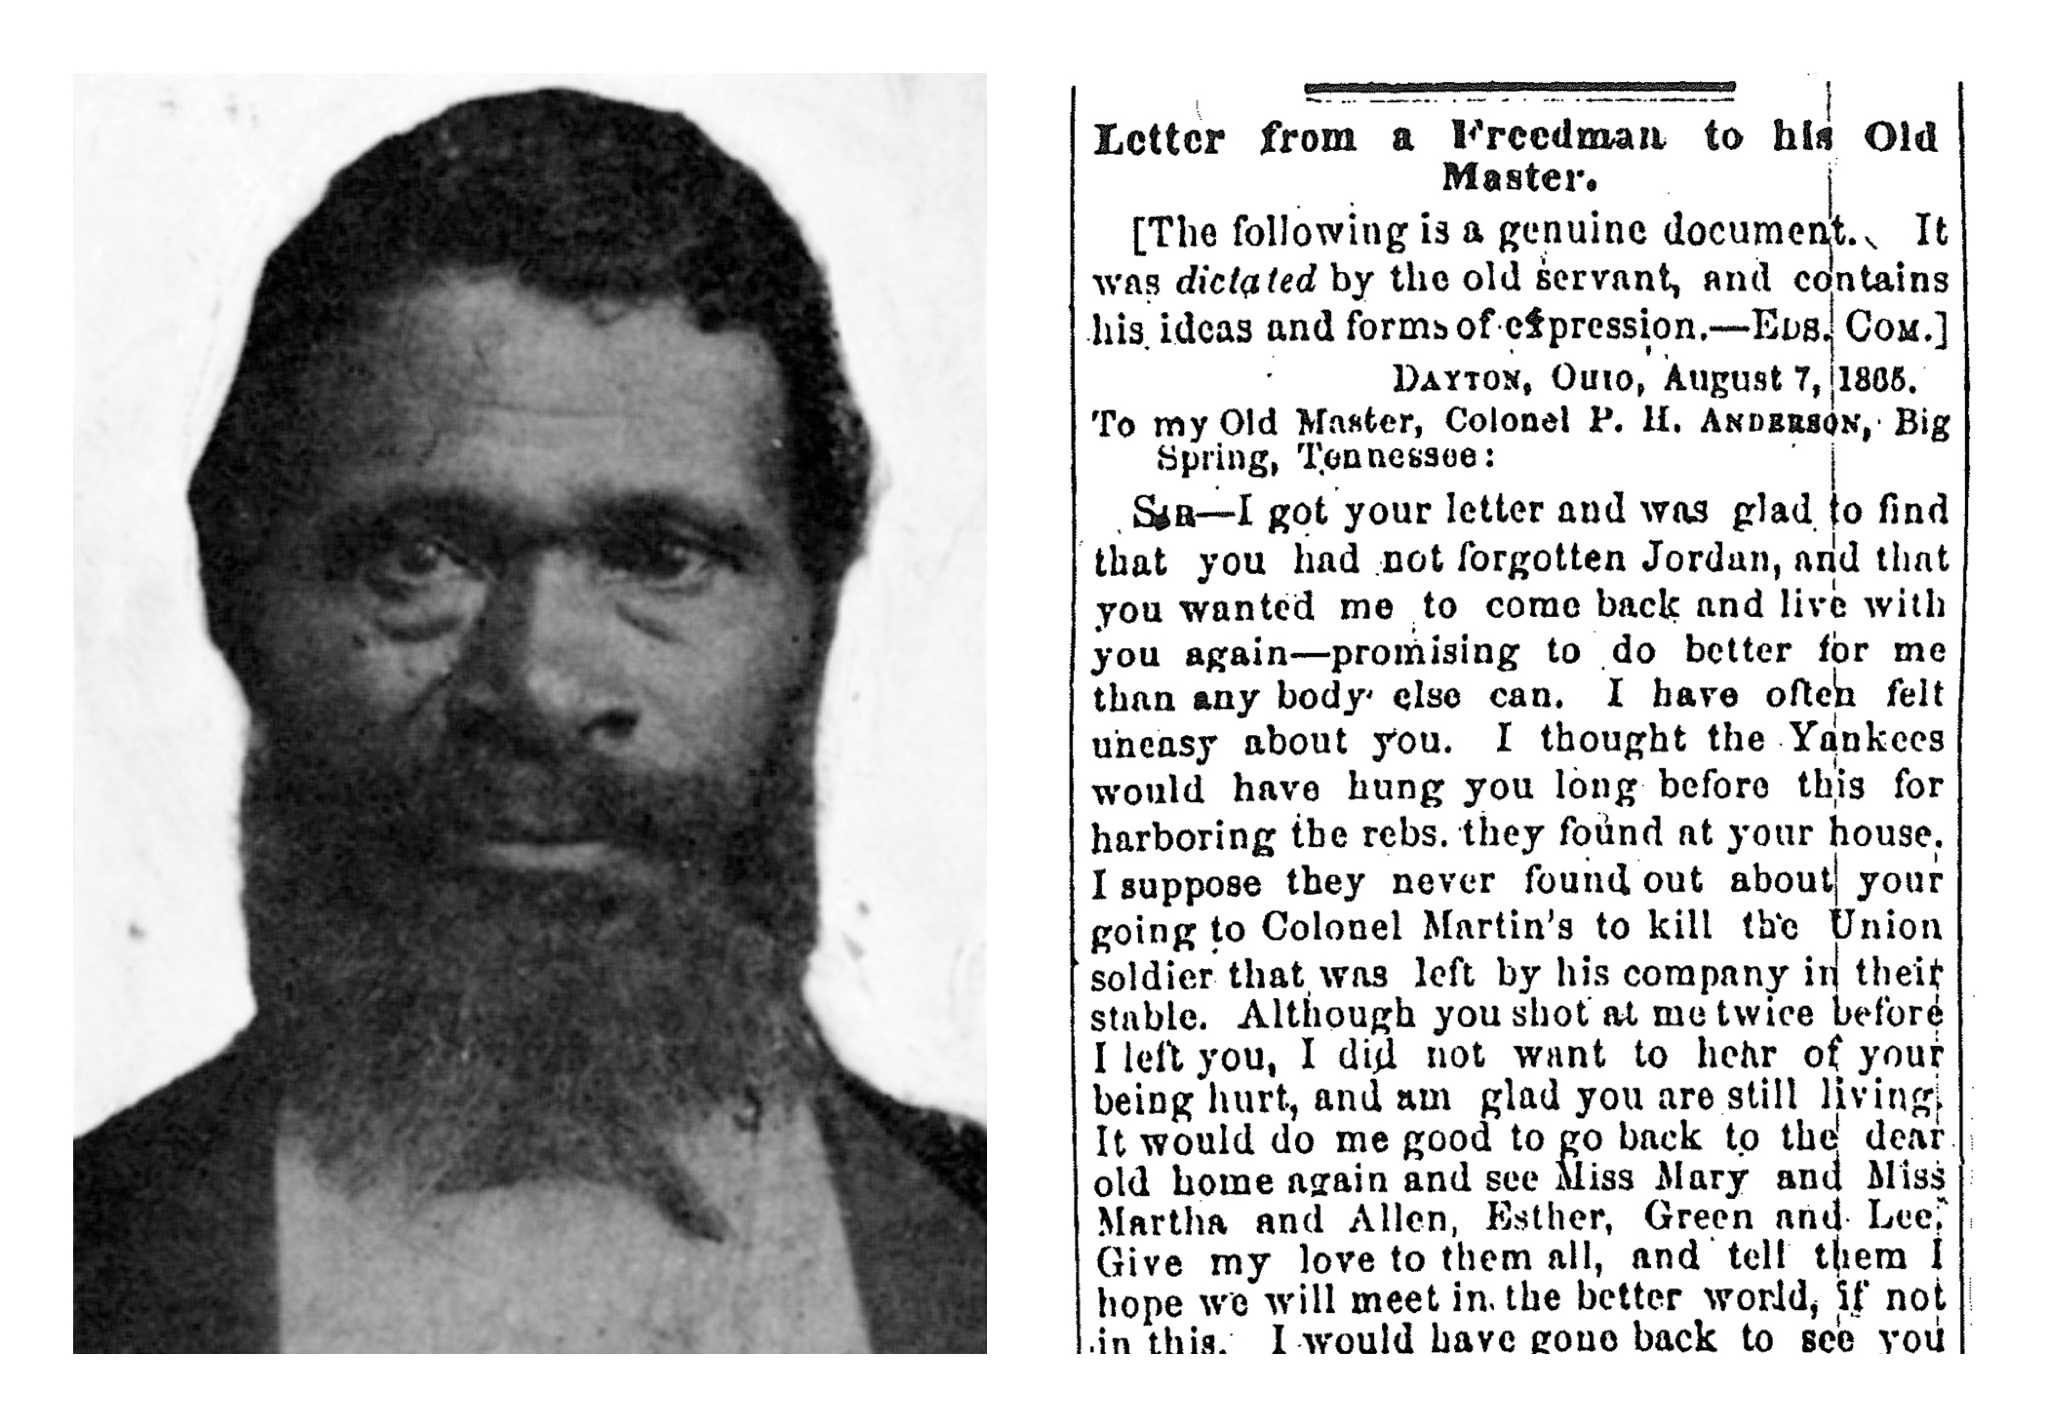 jourdon anderson letter